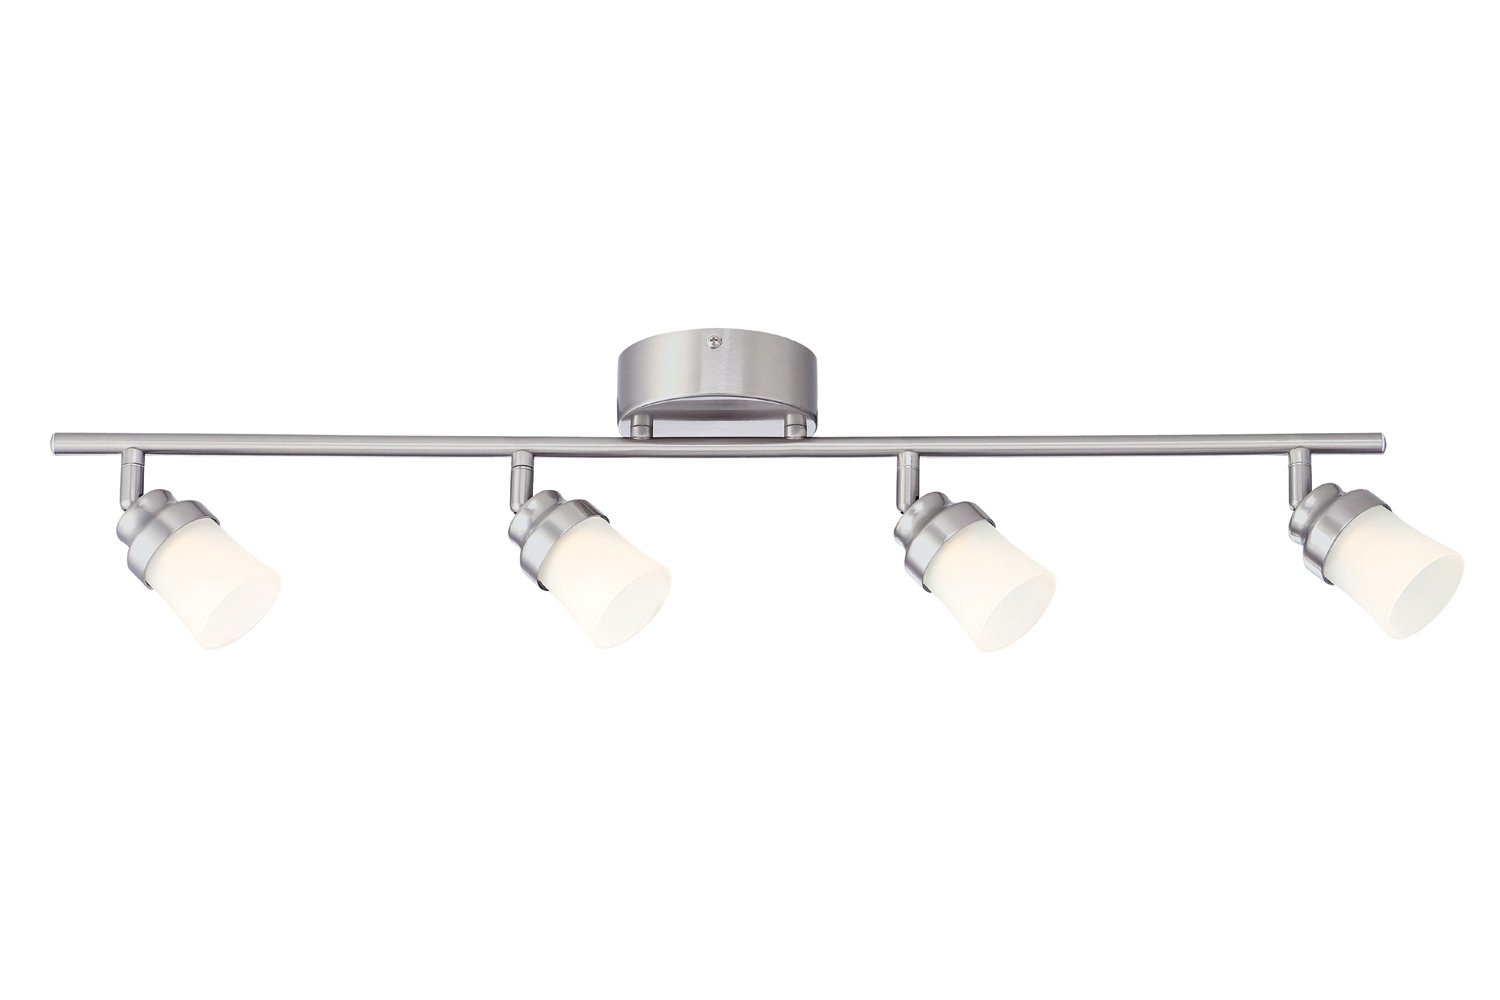 Designers Fountain EVT102027 Brushed Nickel LED Track Lighting Kit with 4 LED Track Lights, 1890 Lumens, 3 ft